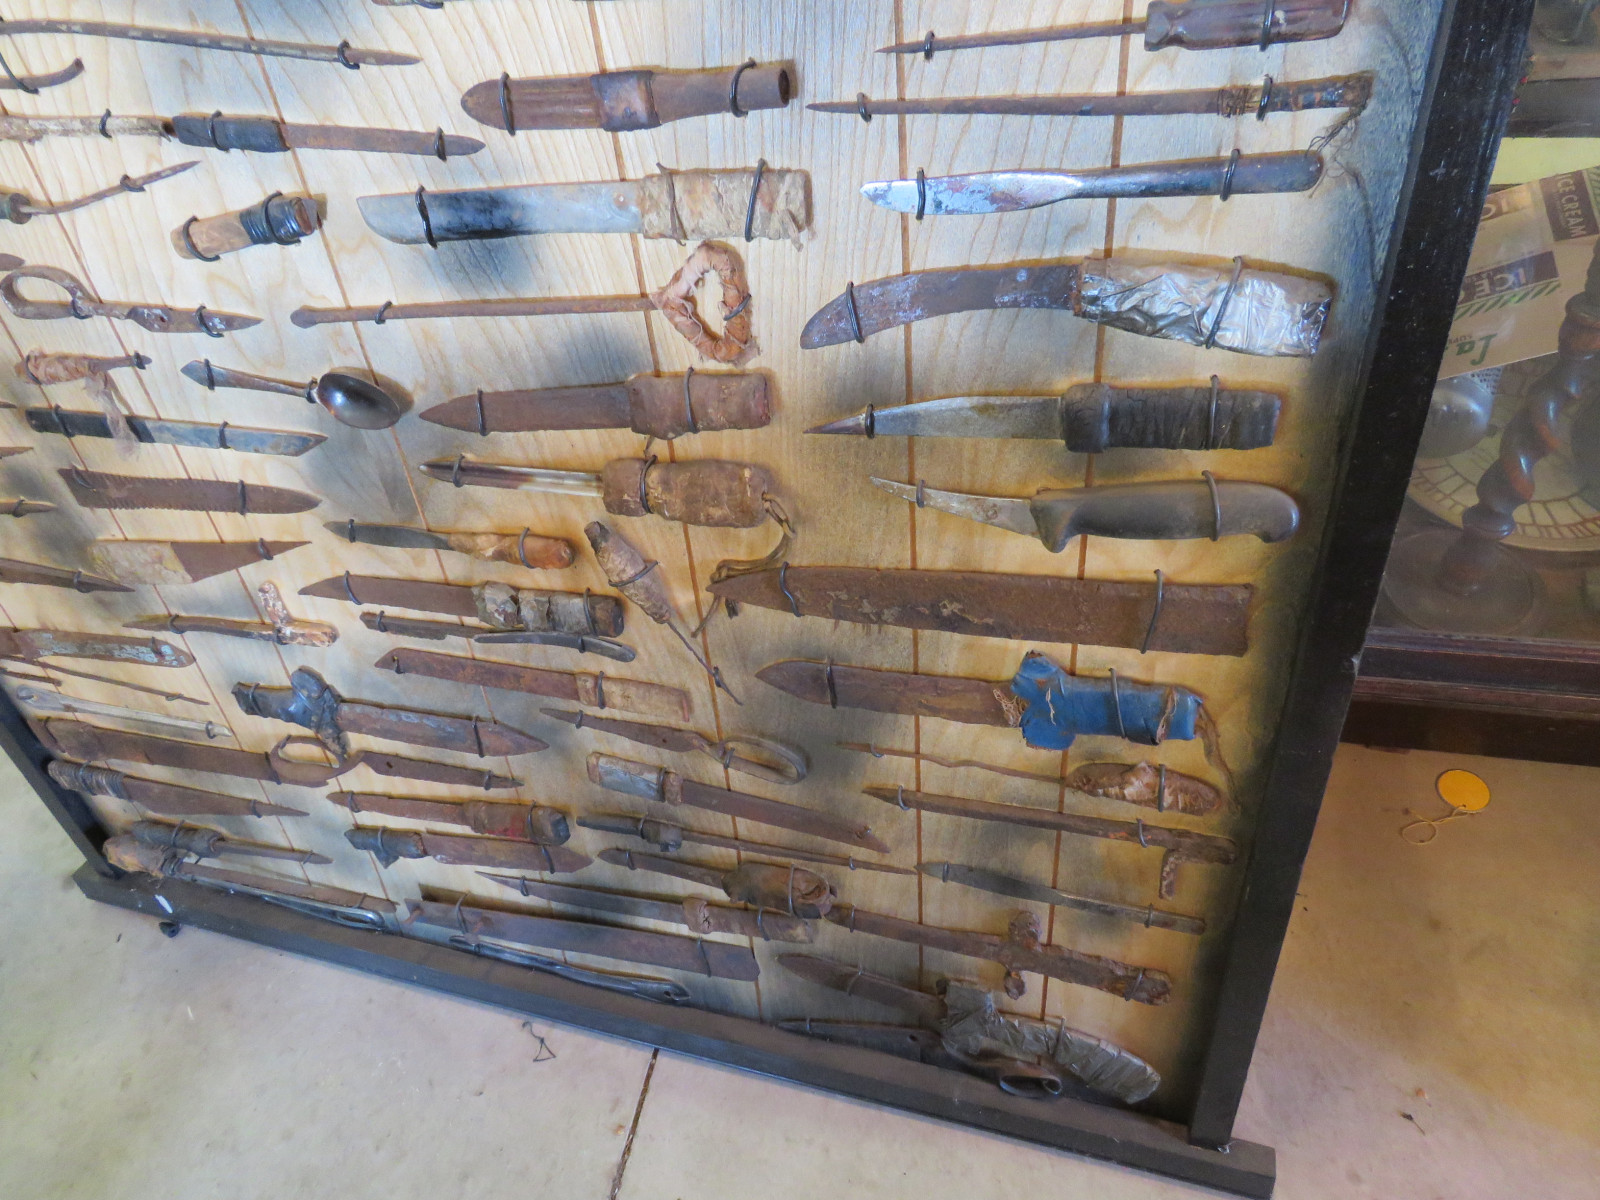 Prison Shank Collection - Image 5